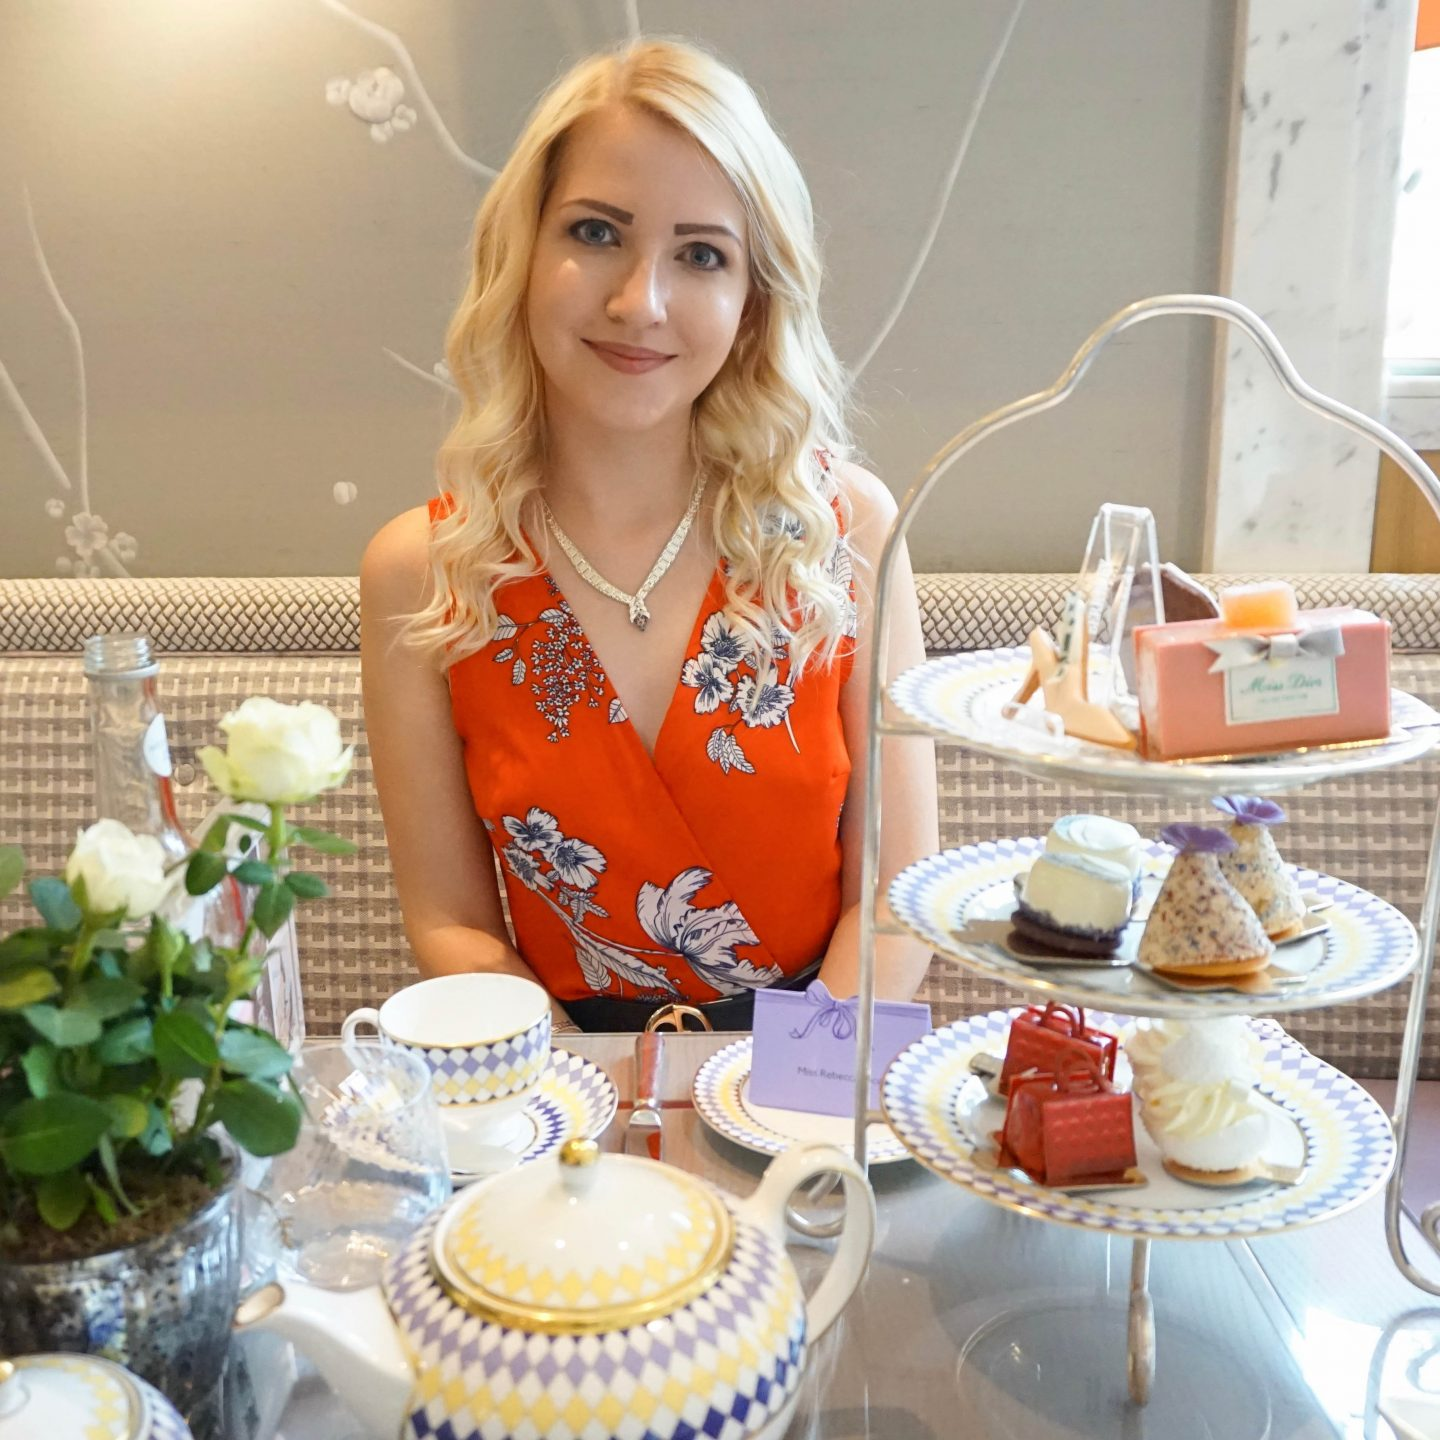 Dior Prêt-à-Portea afternoon tea